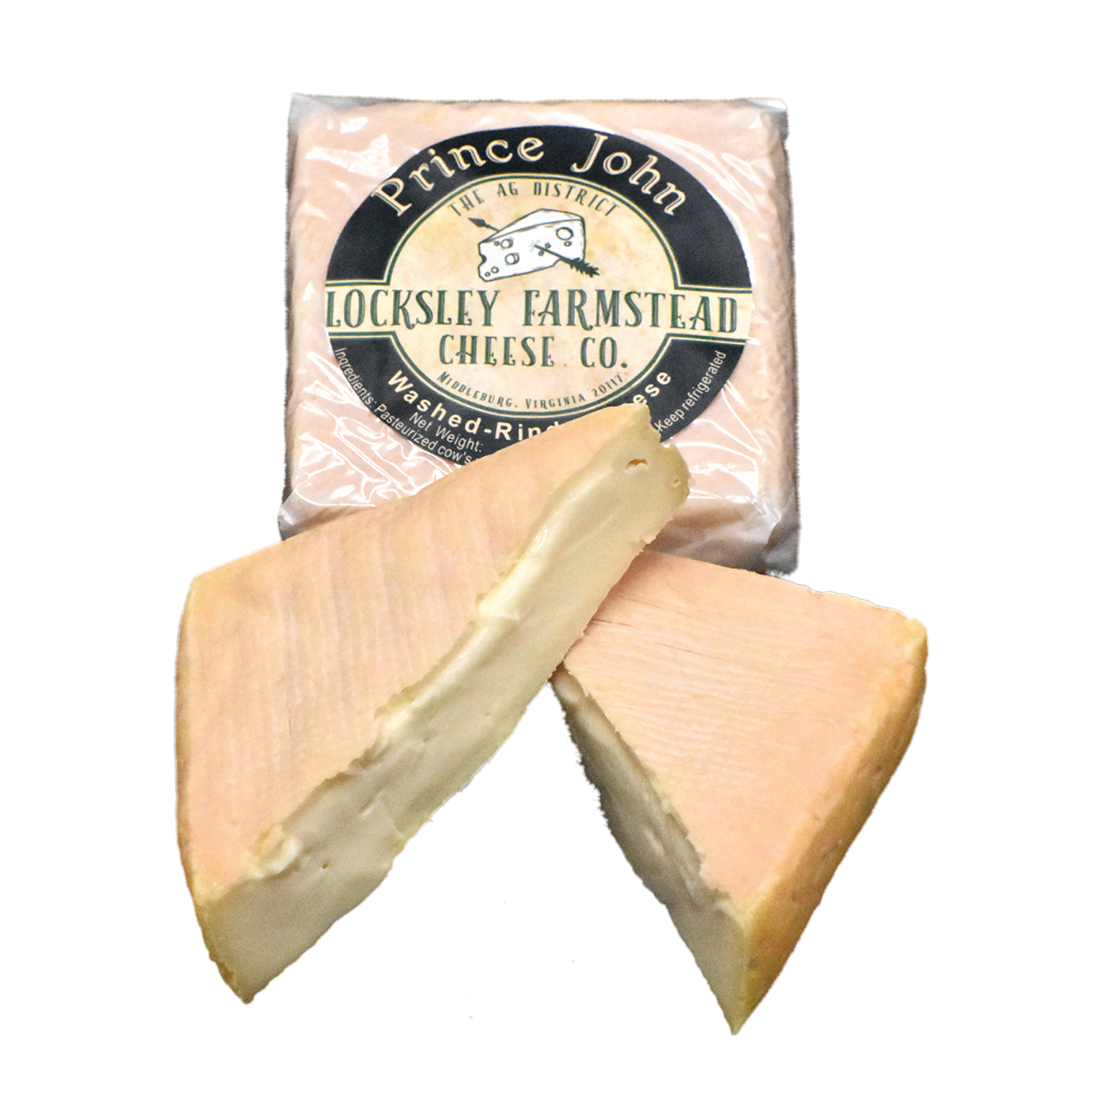 Cheese Product Images for Website3.png